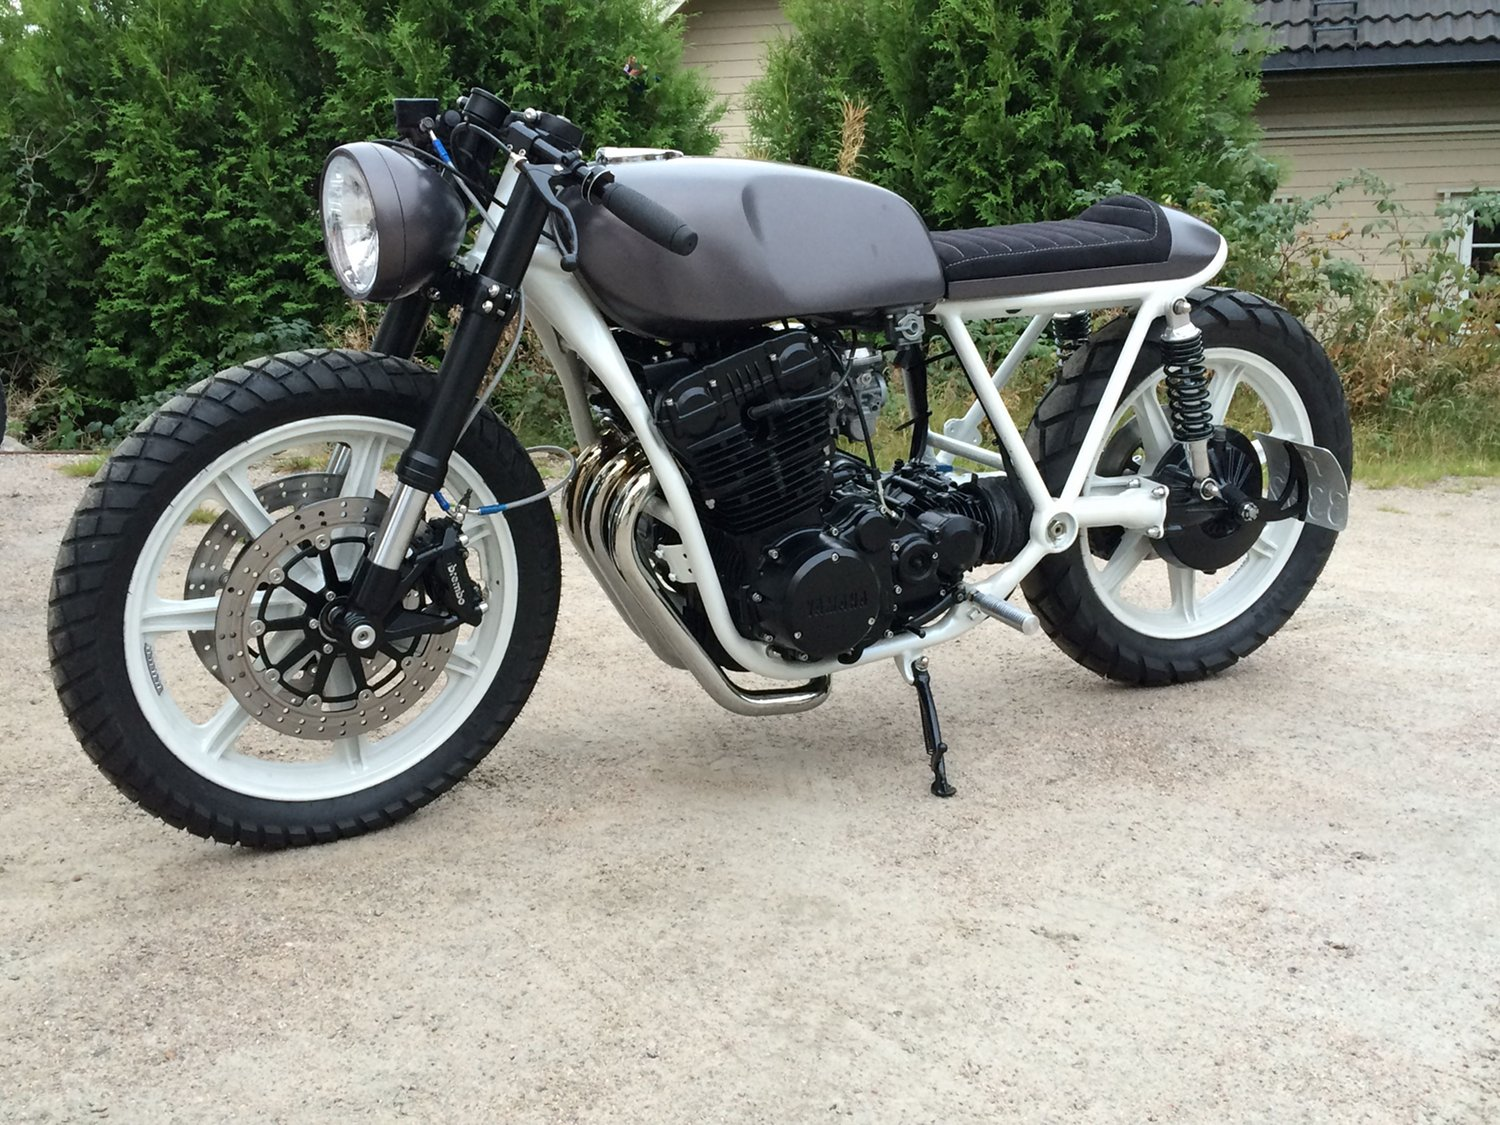 Yamaha XS850 Cafe Racer by Therapy Moto – BikeBound on